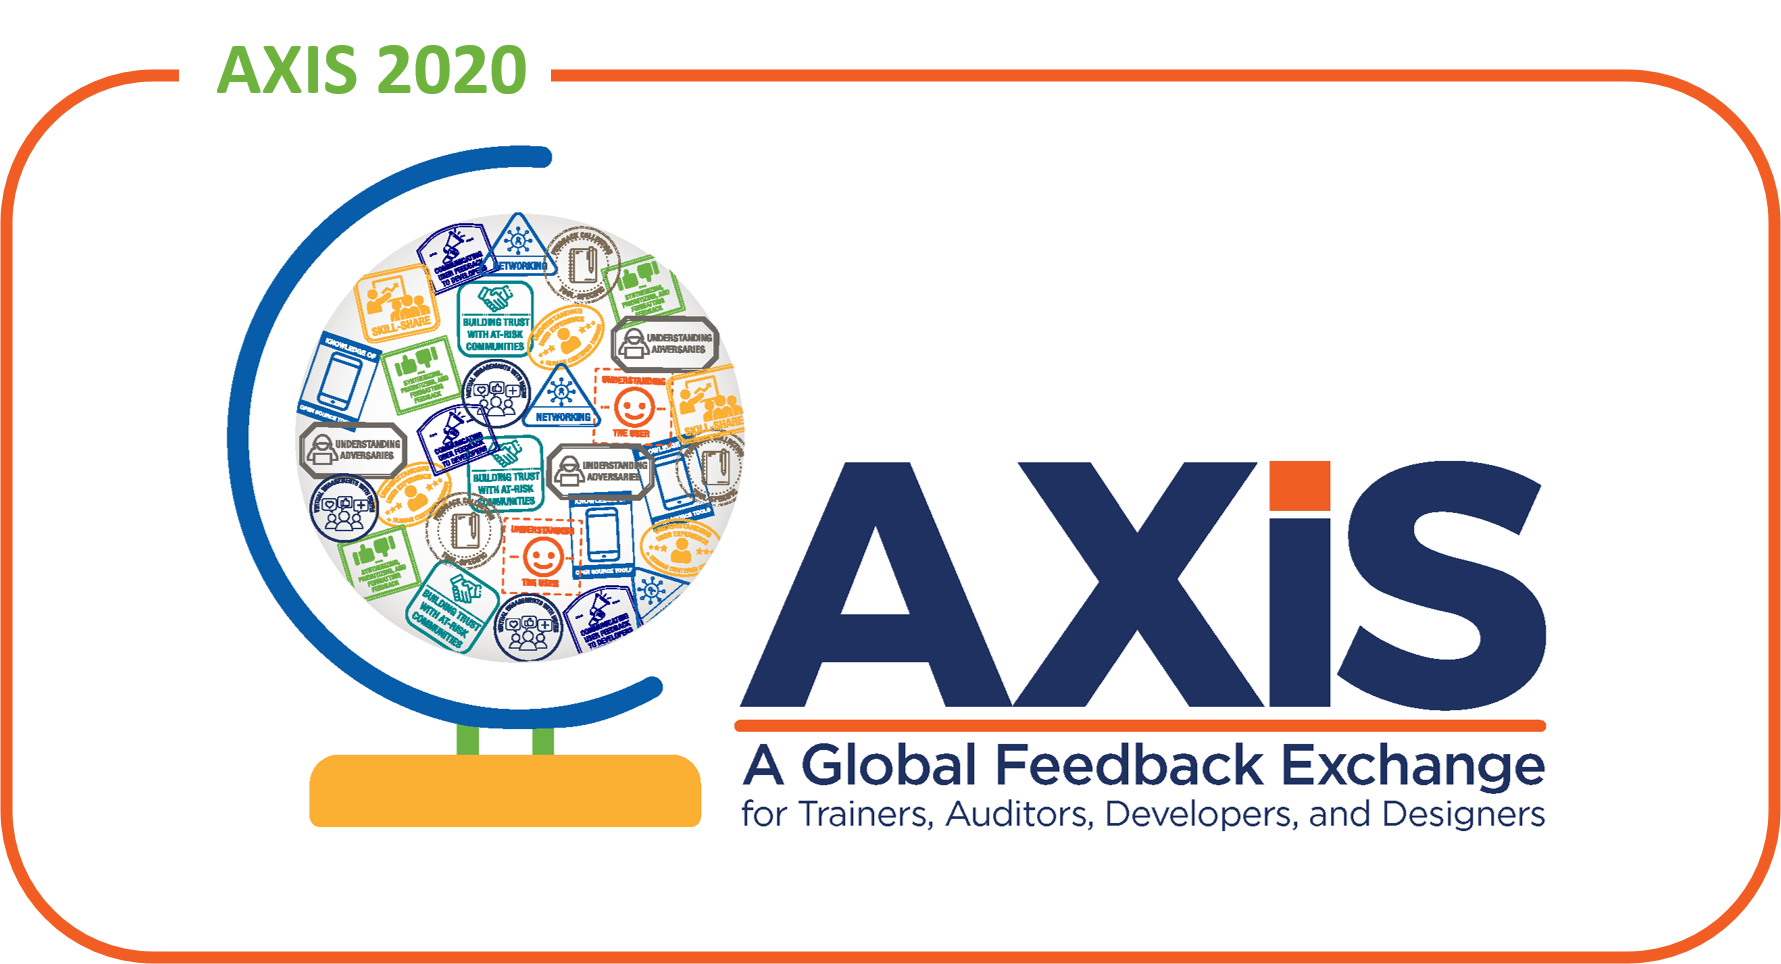 Image with title AXIS: A Global Feedback Exchange for Trainers, Auditors, Developers, and Designers in text